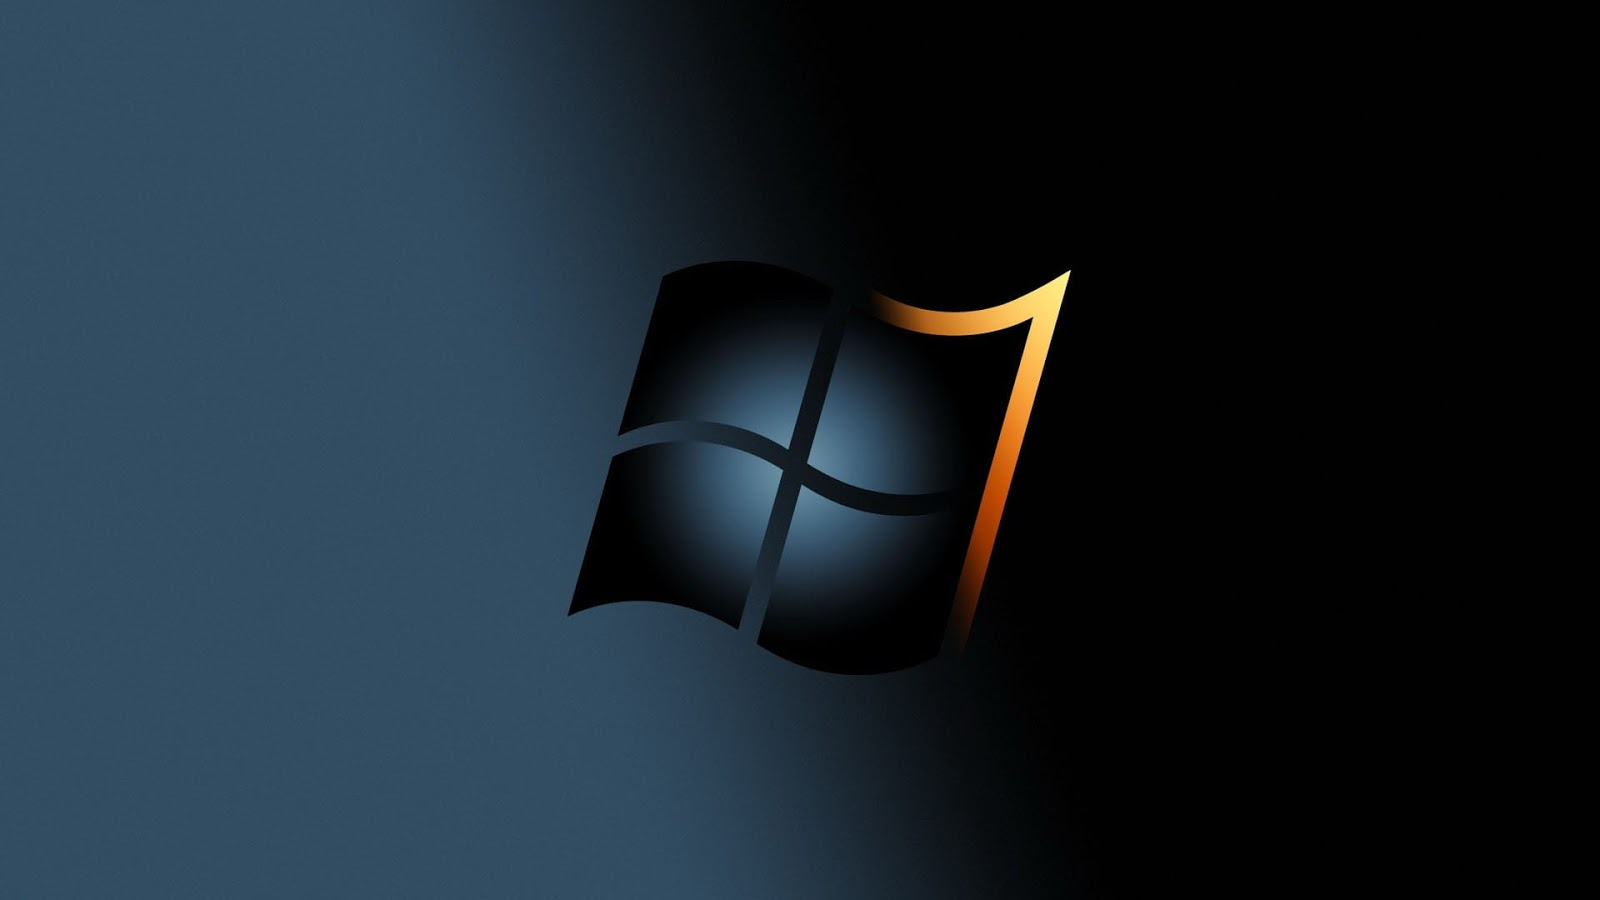 Windows 7 Ultimate Background 99 images in Collection Page 1 1600x900